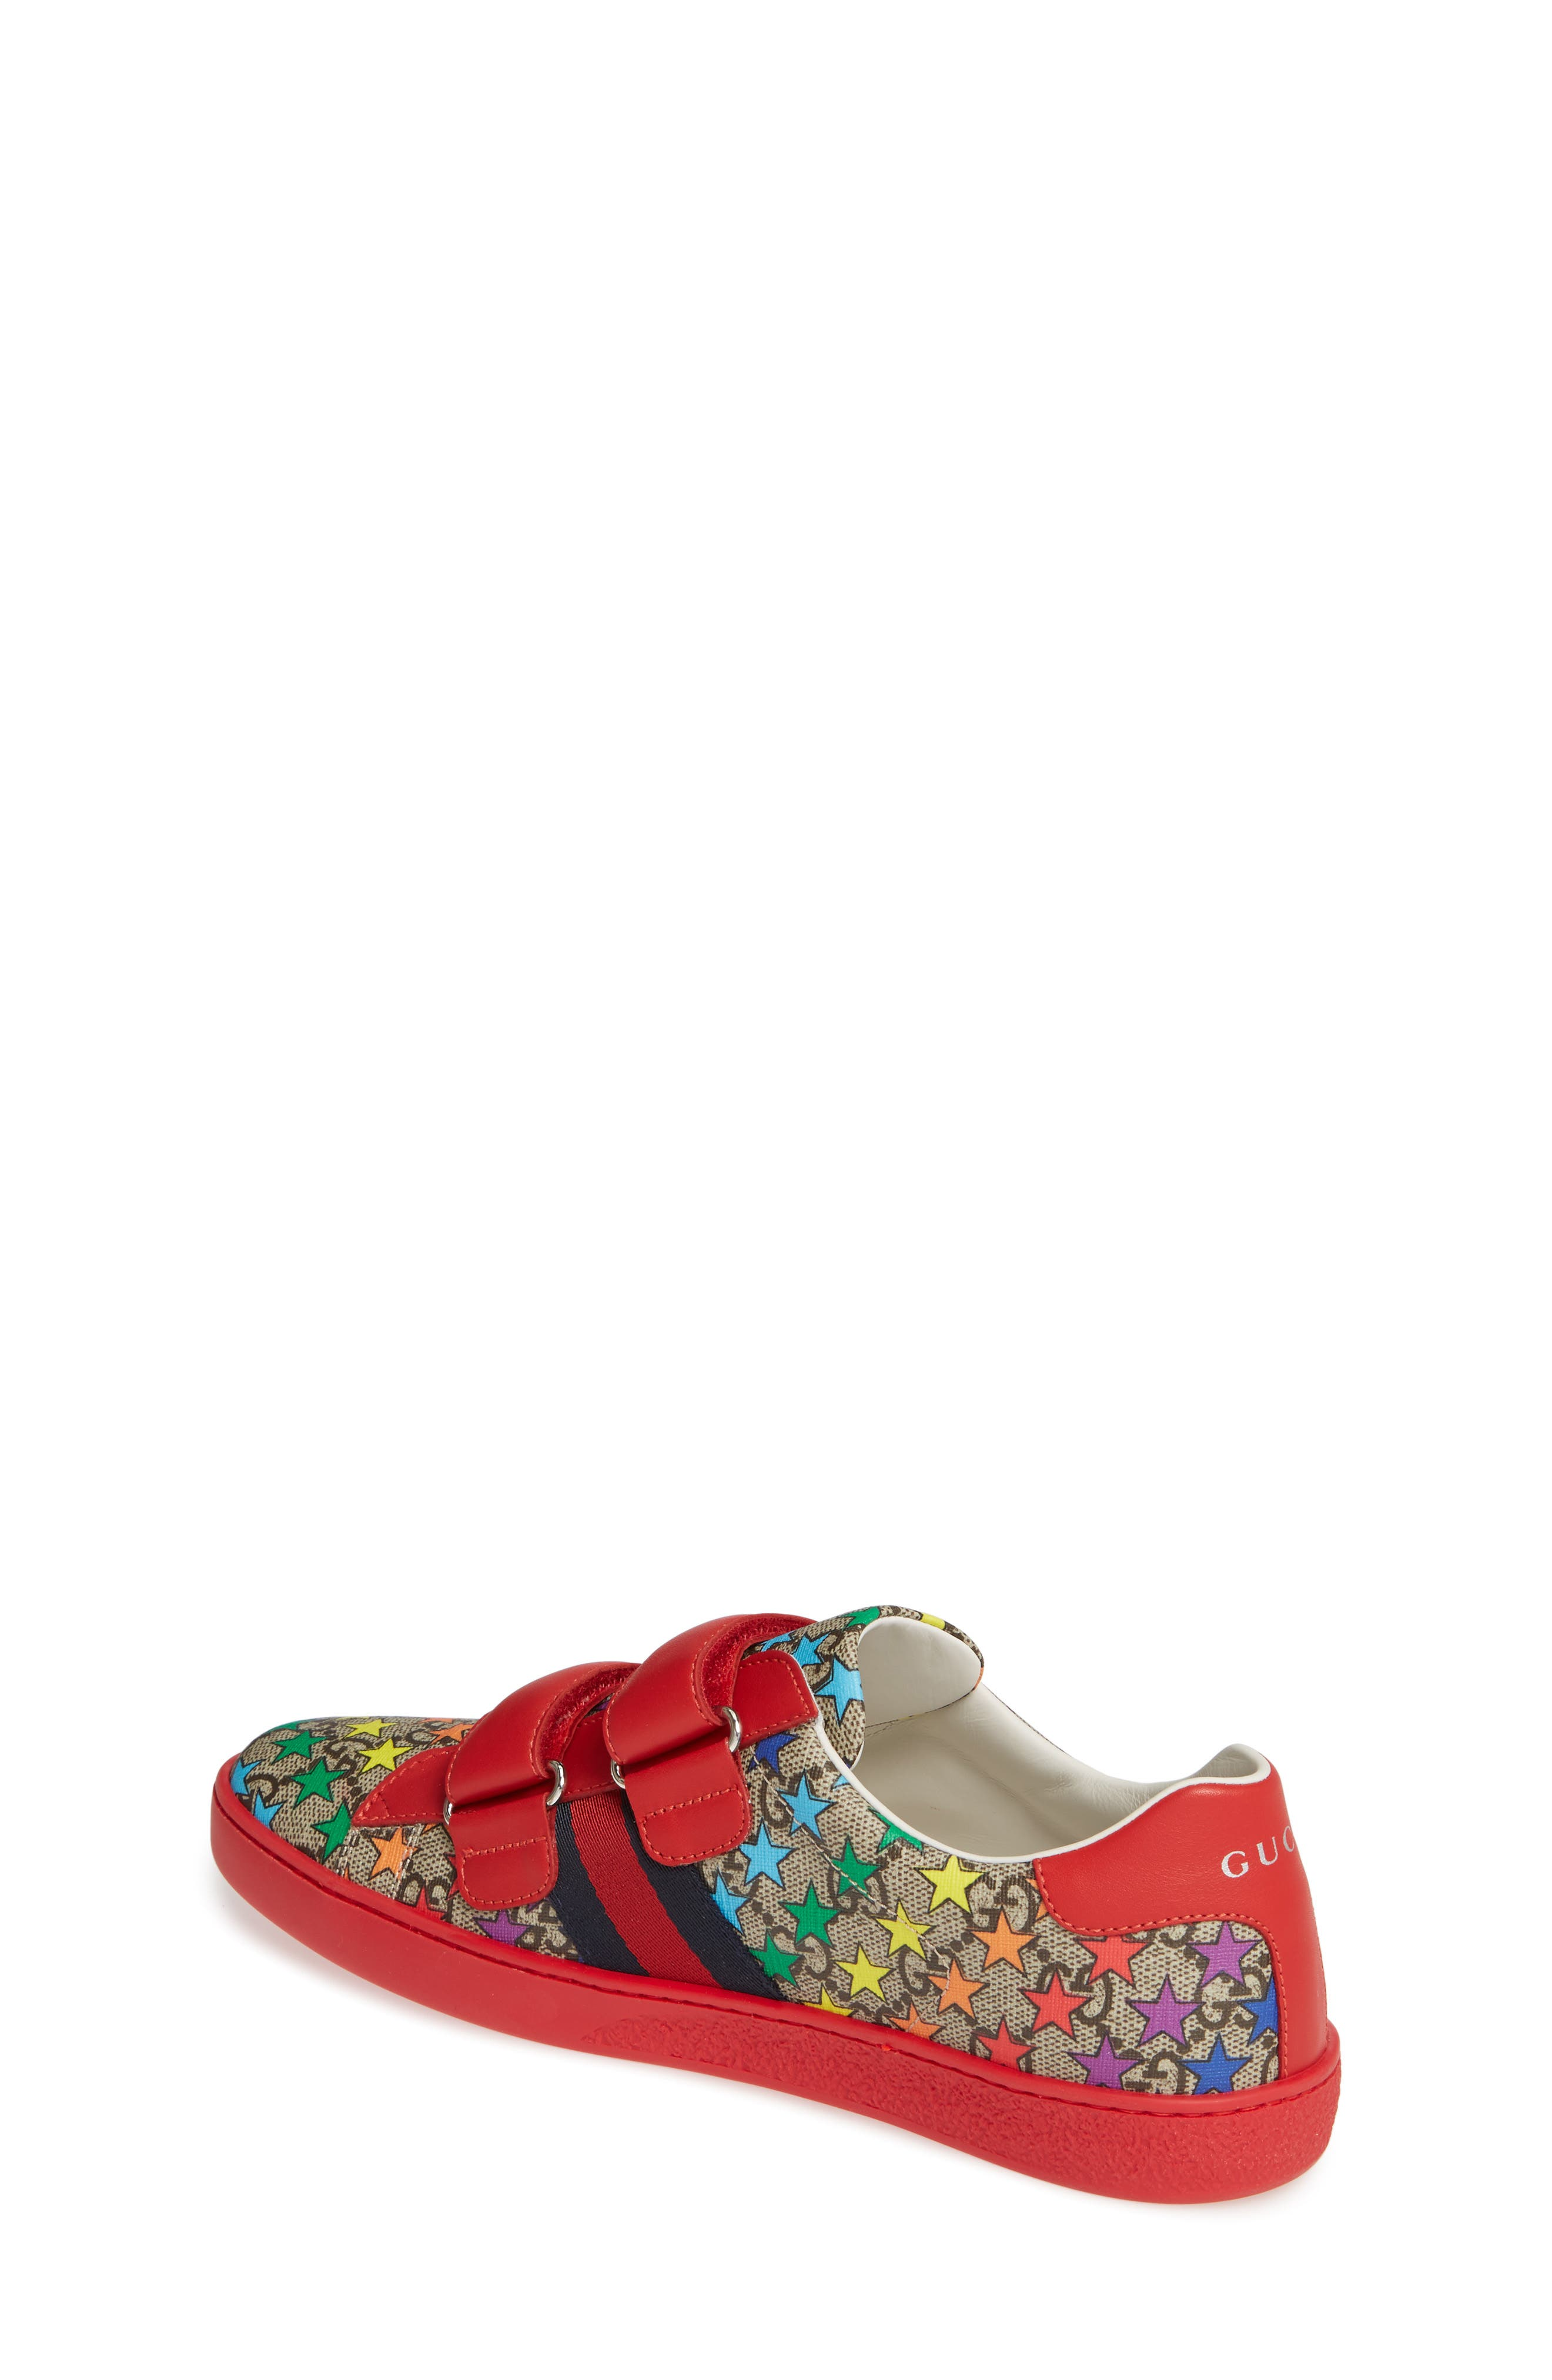 GUCCI, New Ace Sneaker, Alternate thumbnail 2, color, RED/ BEIGE/ EBONY